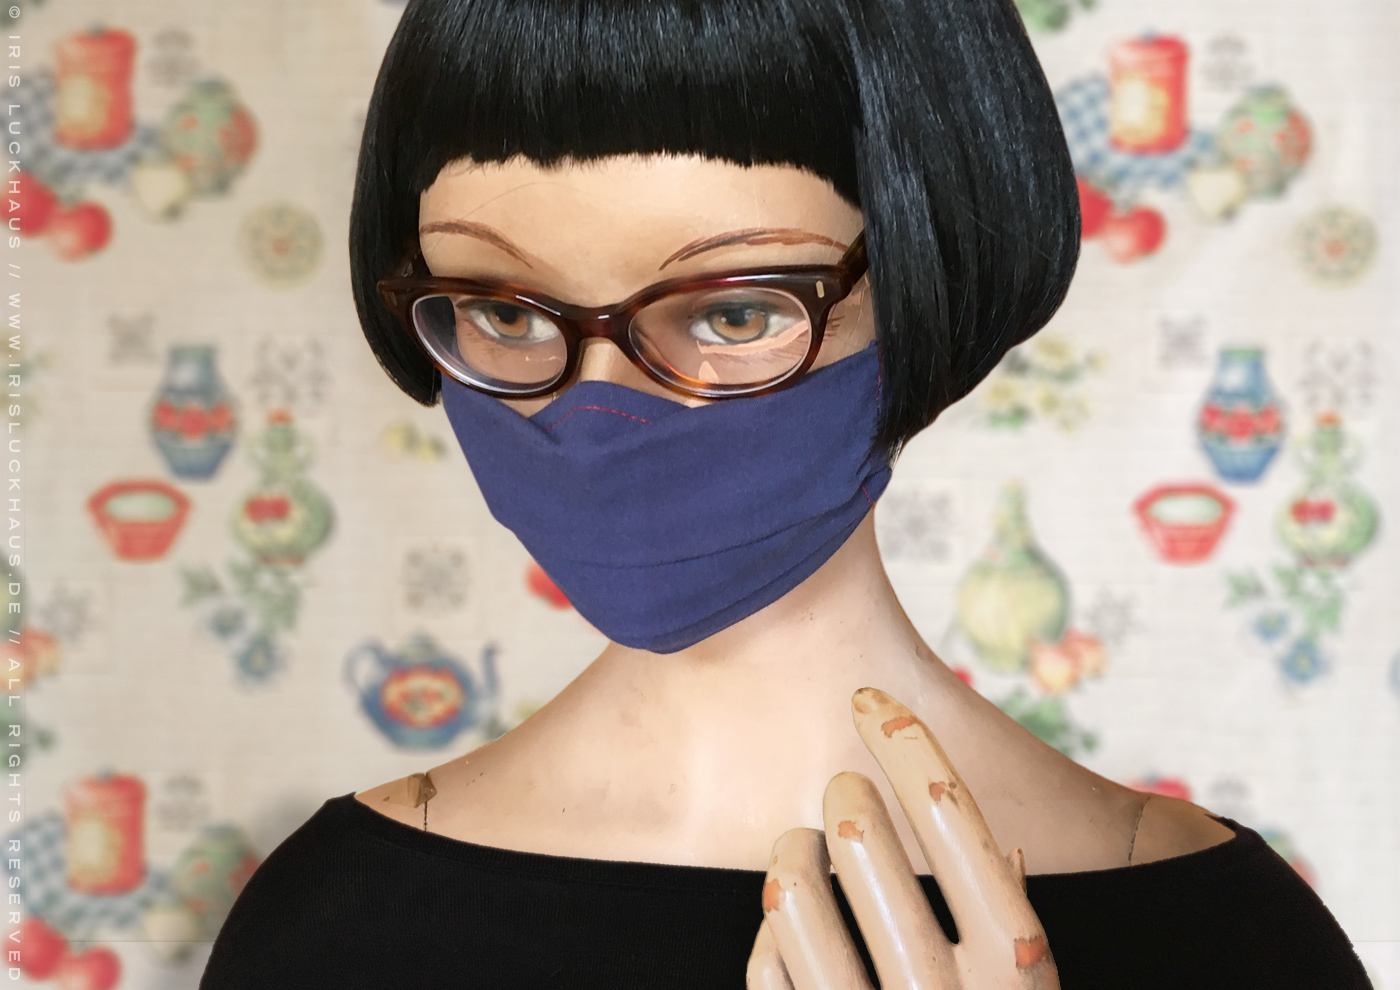 Optimized, gapless, fog free and stay in place hybrid mask, makeshift mask, cloth mask, face mask or face covering for glasses, DIY self-sewing with instructions, pattern and template on fabric with nose wire or nose piece, filter opening and drawstring channel for ears loops and head ties by Iris Luckhaus